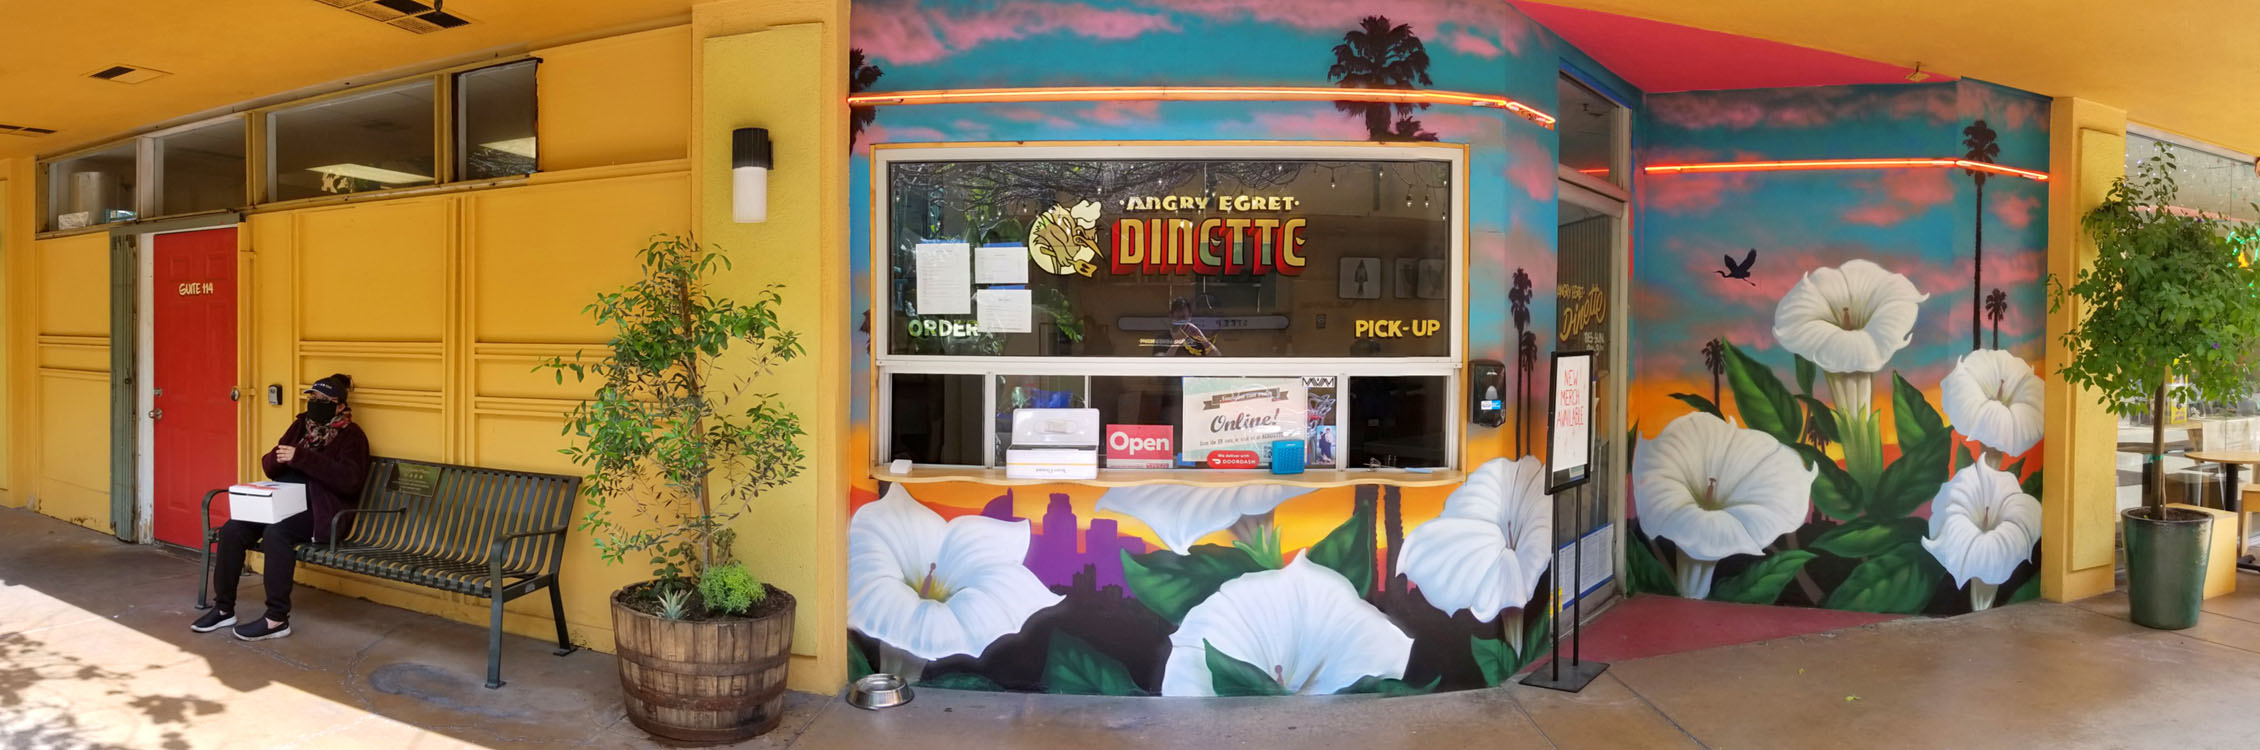 Angry Egret Dinette Exterior